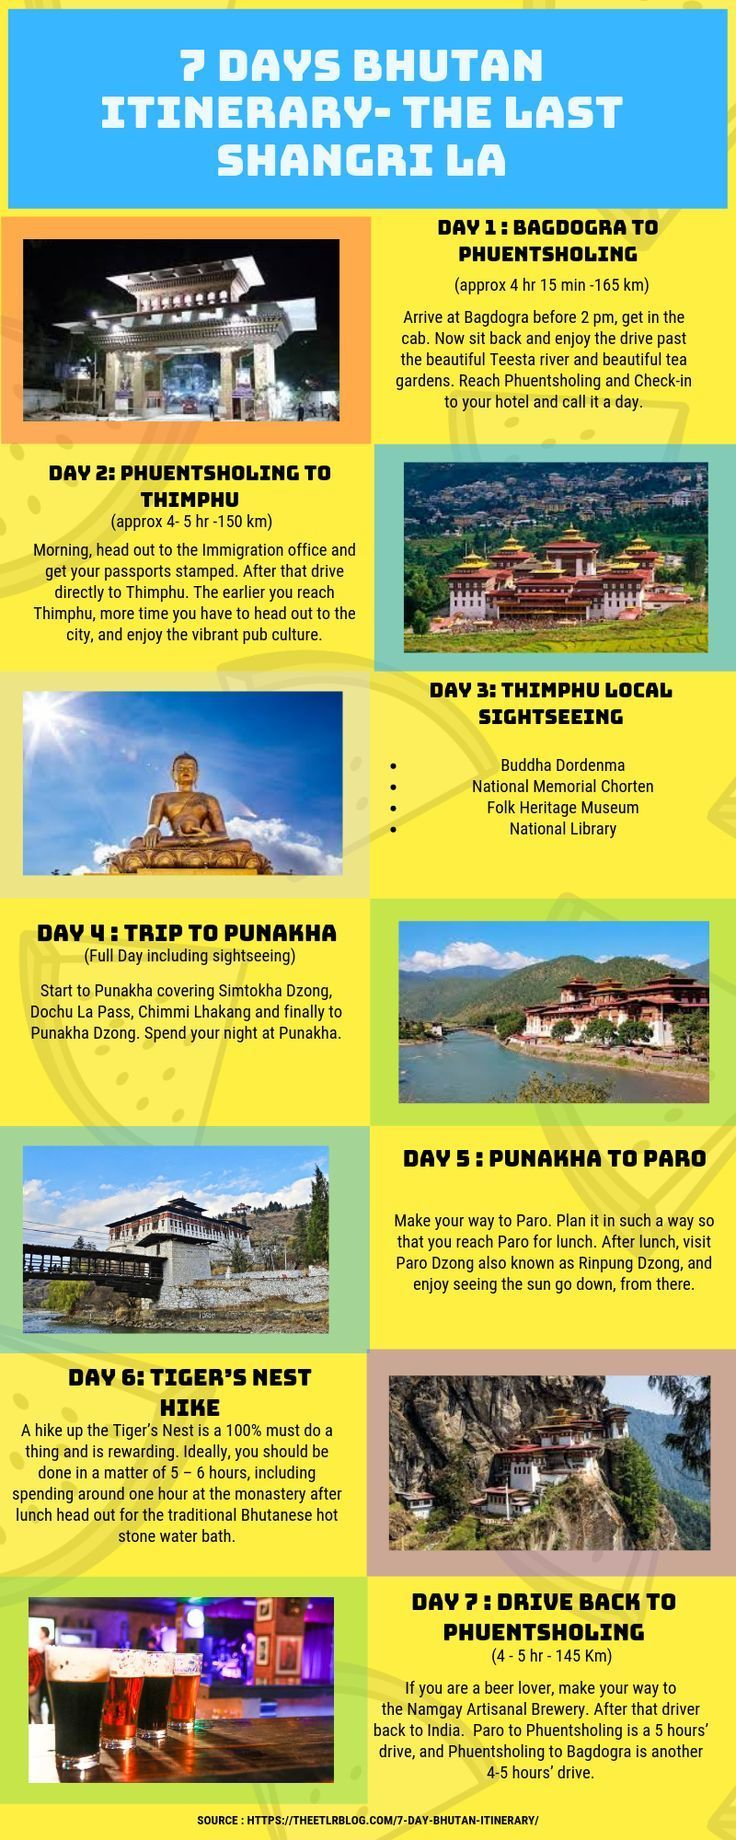 The Ideal 7 Day Road Trip To Bhutan Itinerary Eat Travel Live Repeat Bhutan Travel Road Trip Itinerary Travel Itinerary